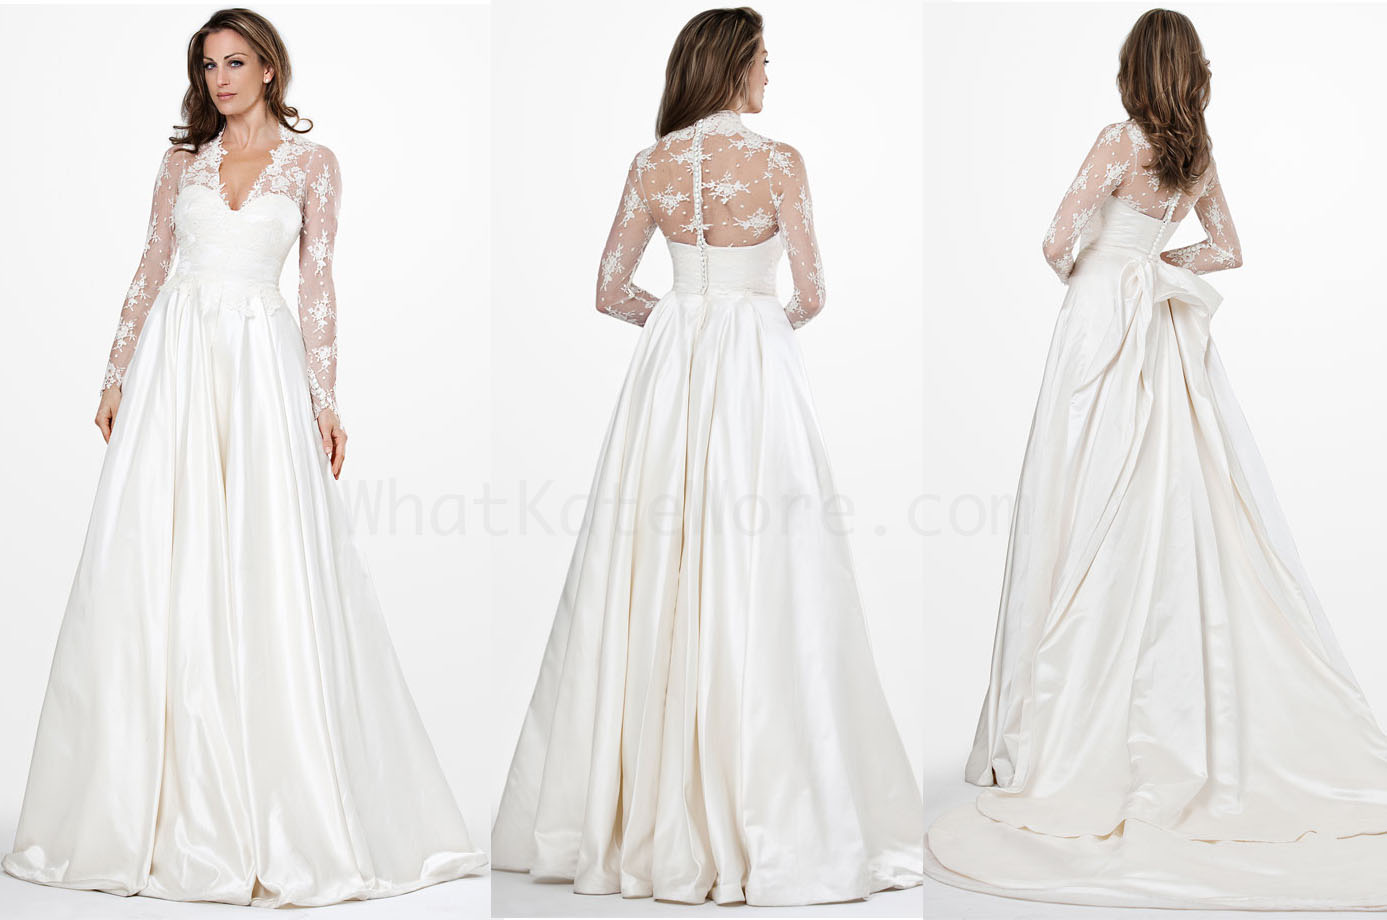 Kate Middletons Wedding Dresses.Sarah Burton Kate Middleton Wedding Gown Archives What